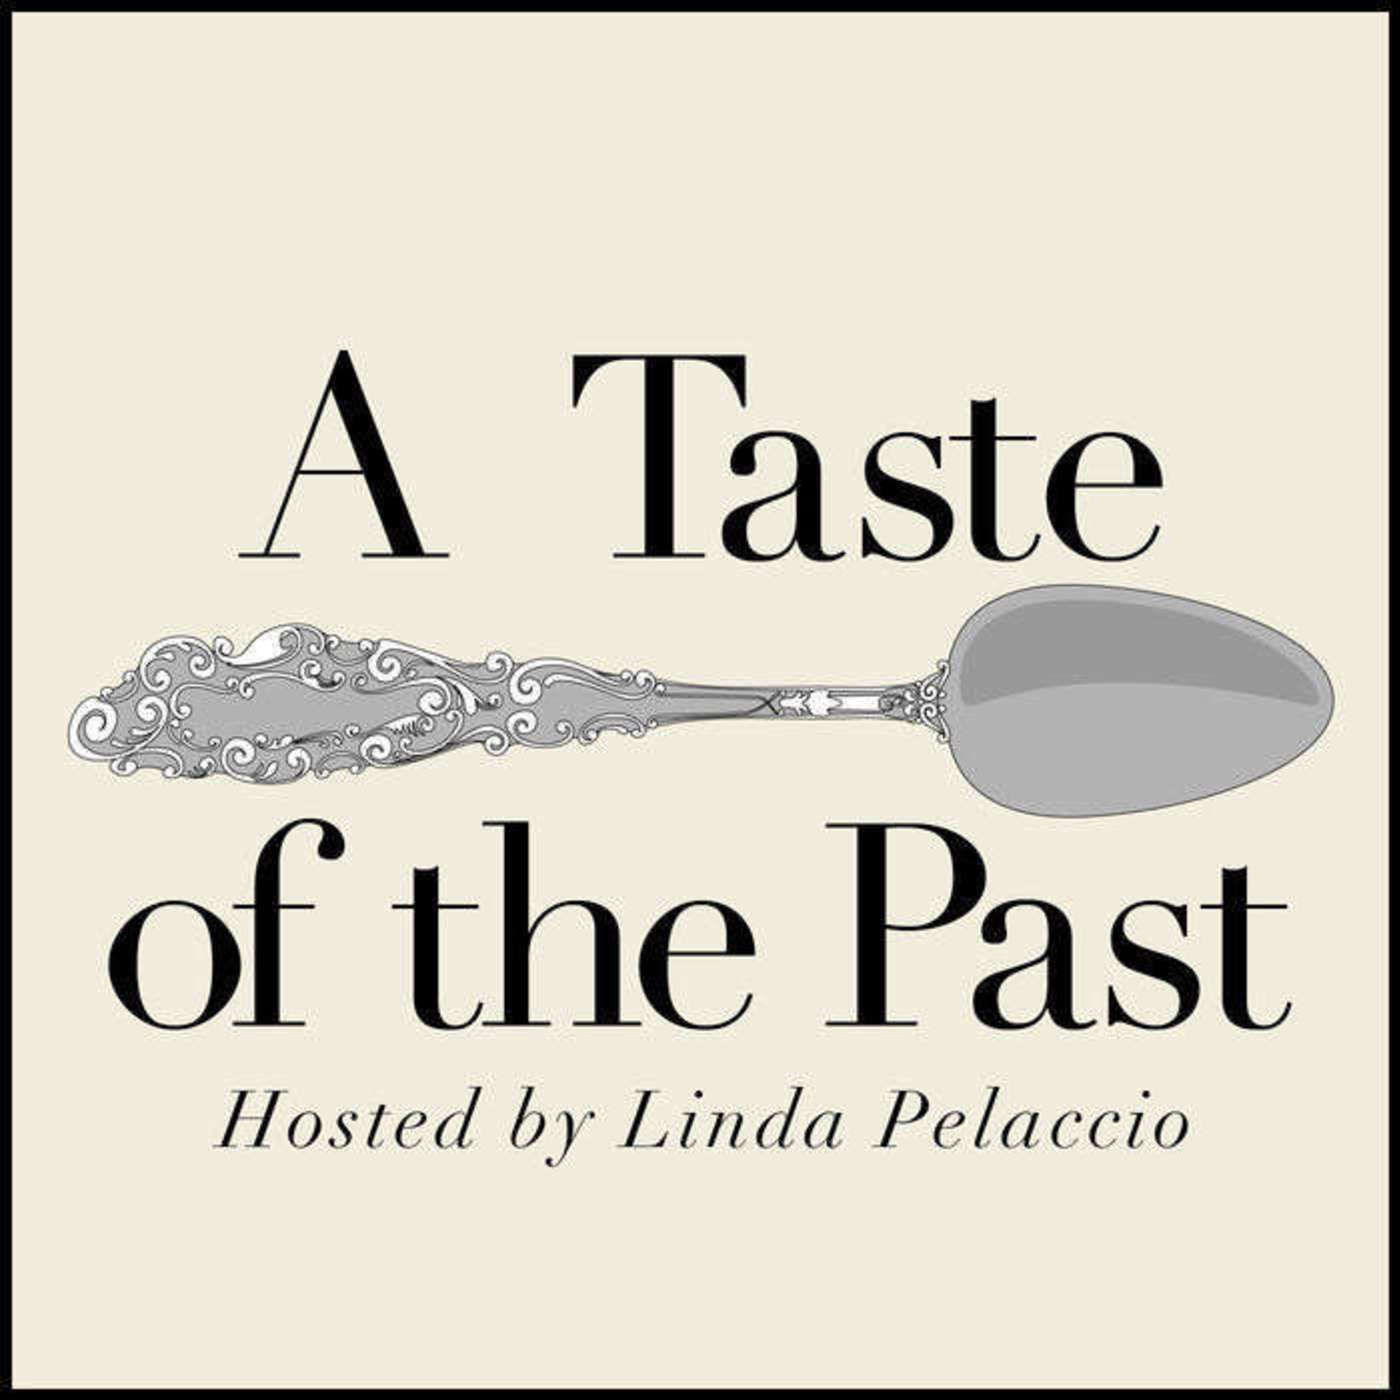 Episode 161: History of Salmon as Food with Nic Mink